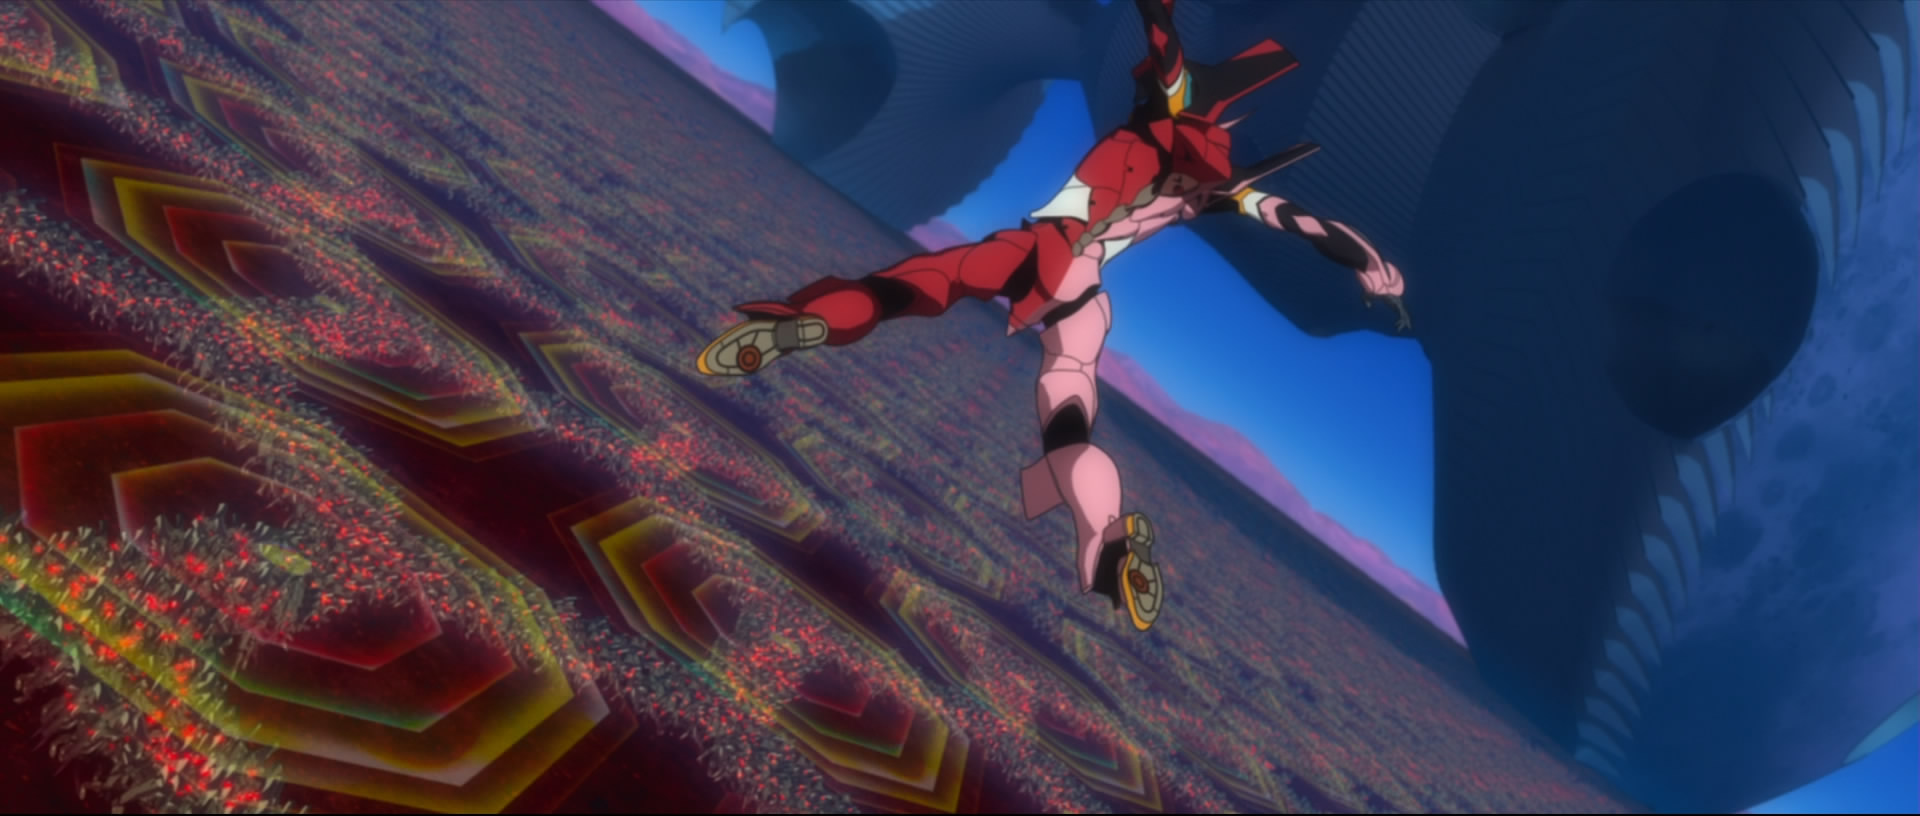 Evangelion 3 33 Movie Thoughts Anime Evo